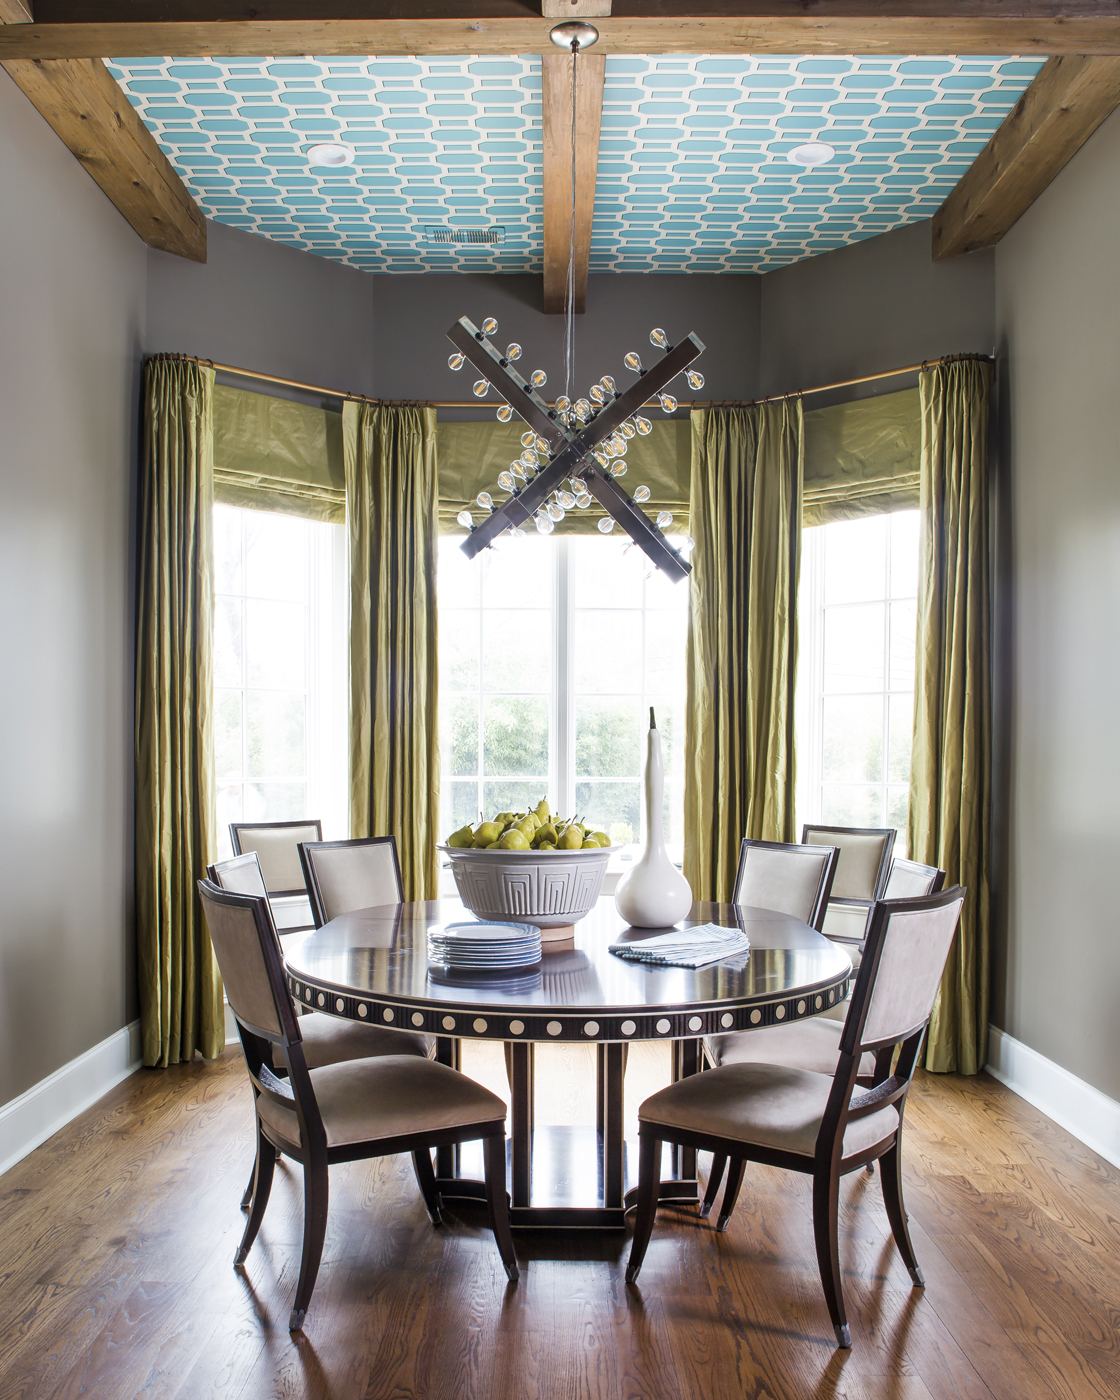 Breakfast room with elegant art deco style round table and chairs; modern x-shape chandelier; turquoise lattice wallpaper on ceiling | Savage Interior Design